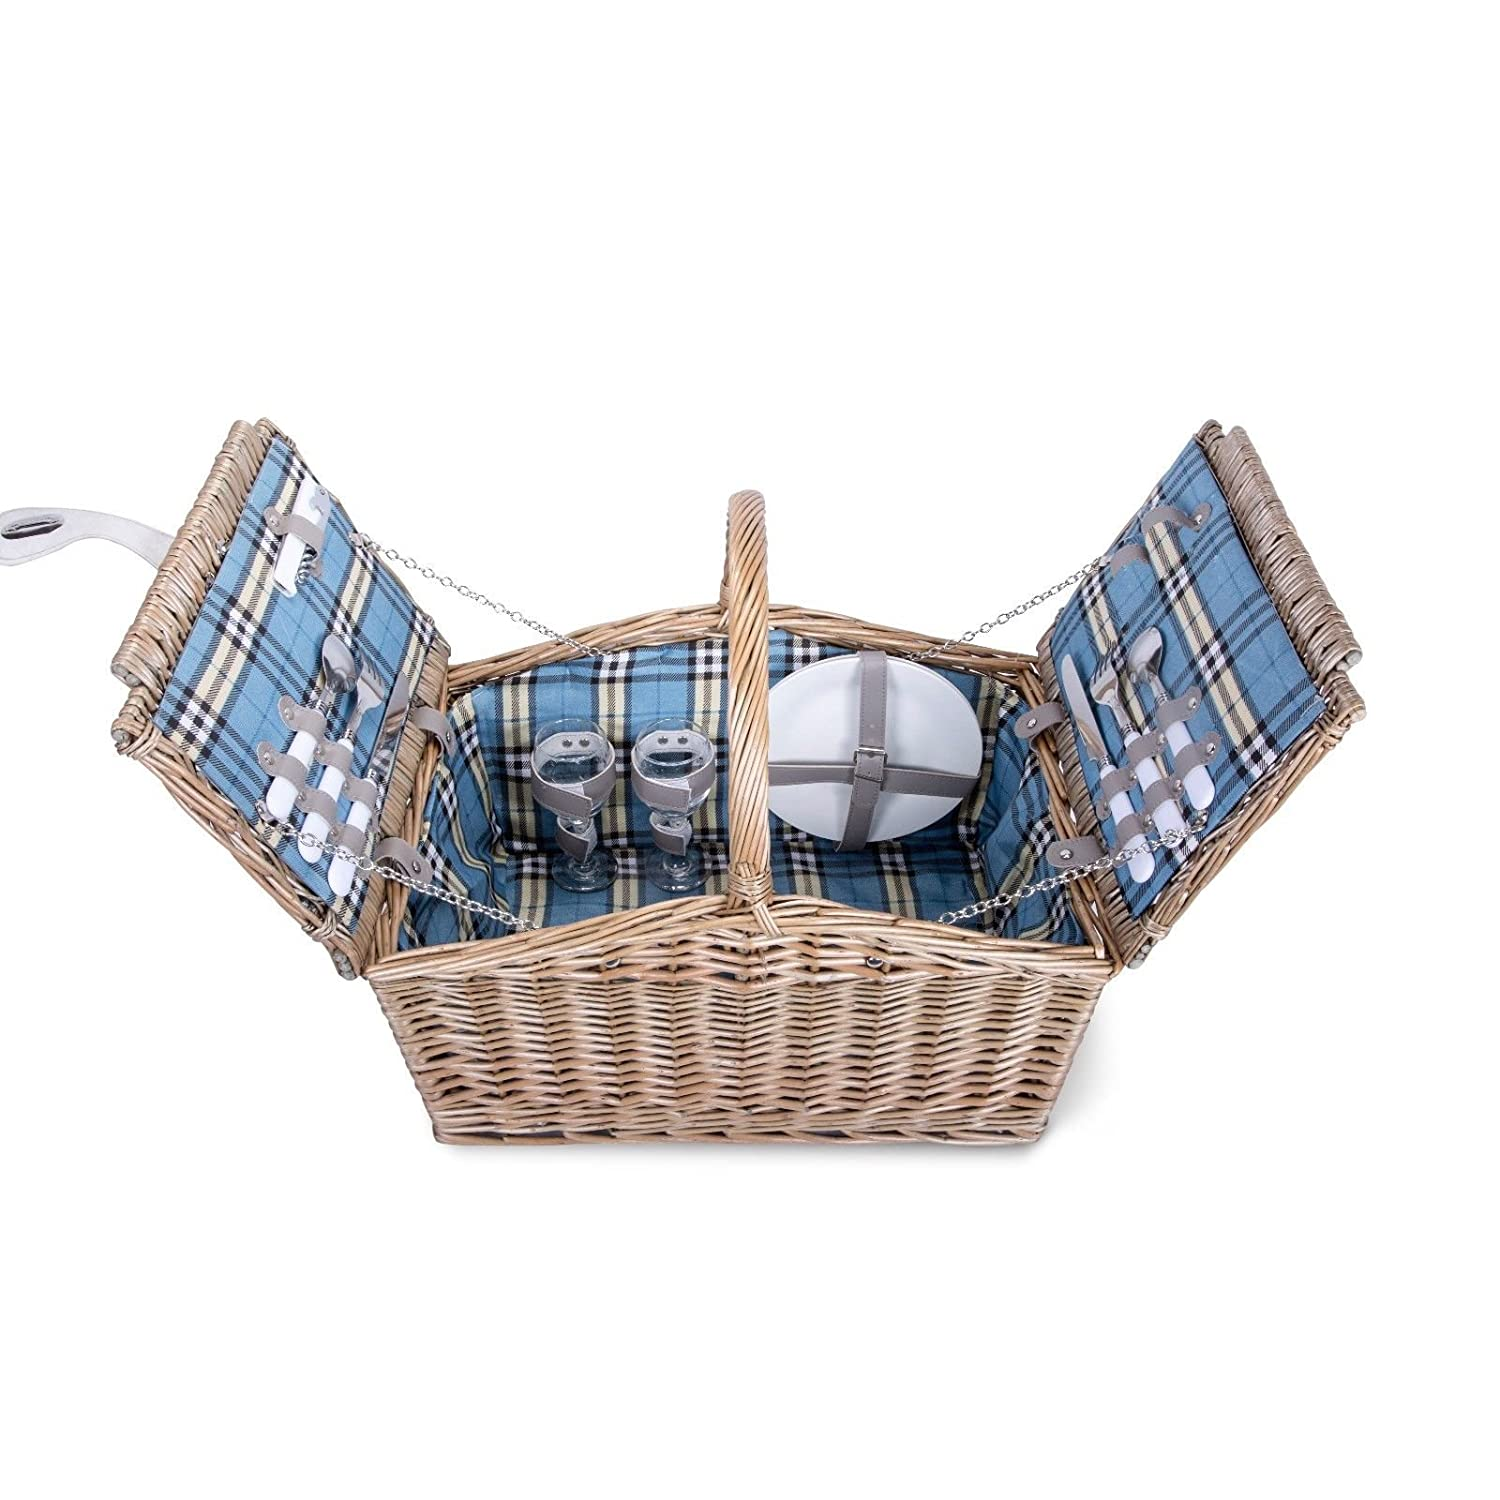 Basic House Ltd 2 Person Grey Wash Wicker High Handle Picnic Gift Hampers Storage Collection